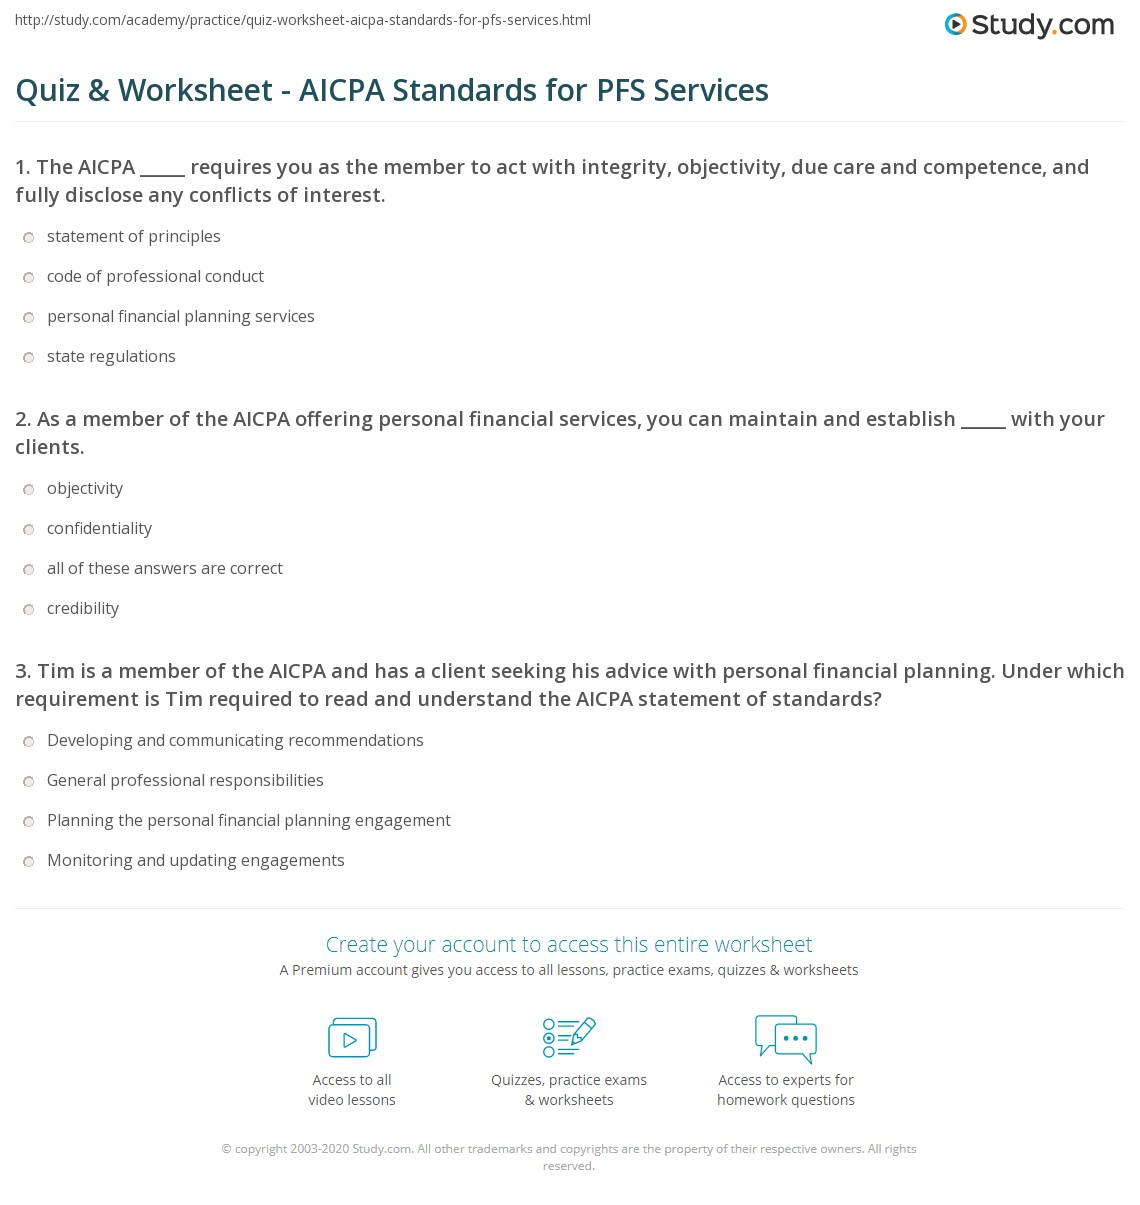 Quiz Worksheet Aicpa Standards For Pfs Services Study